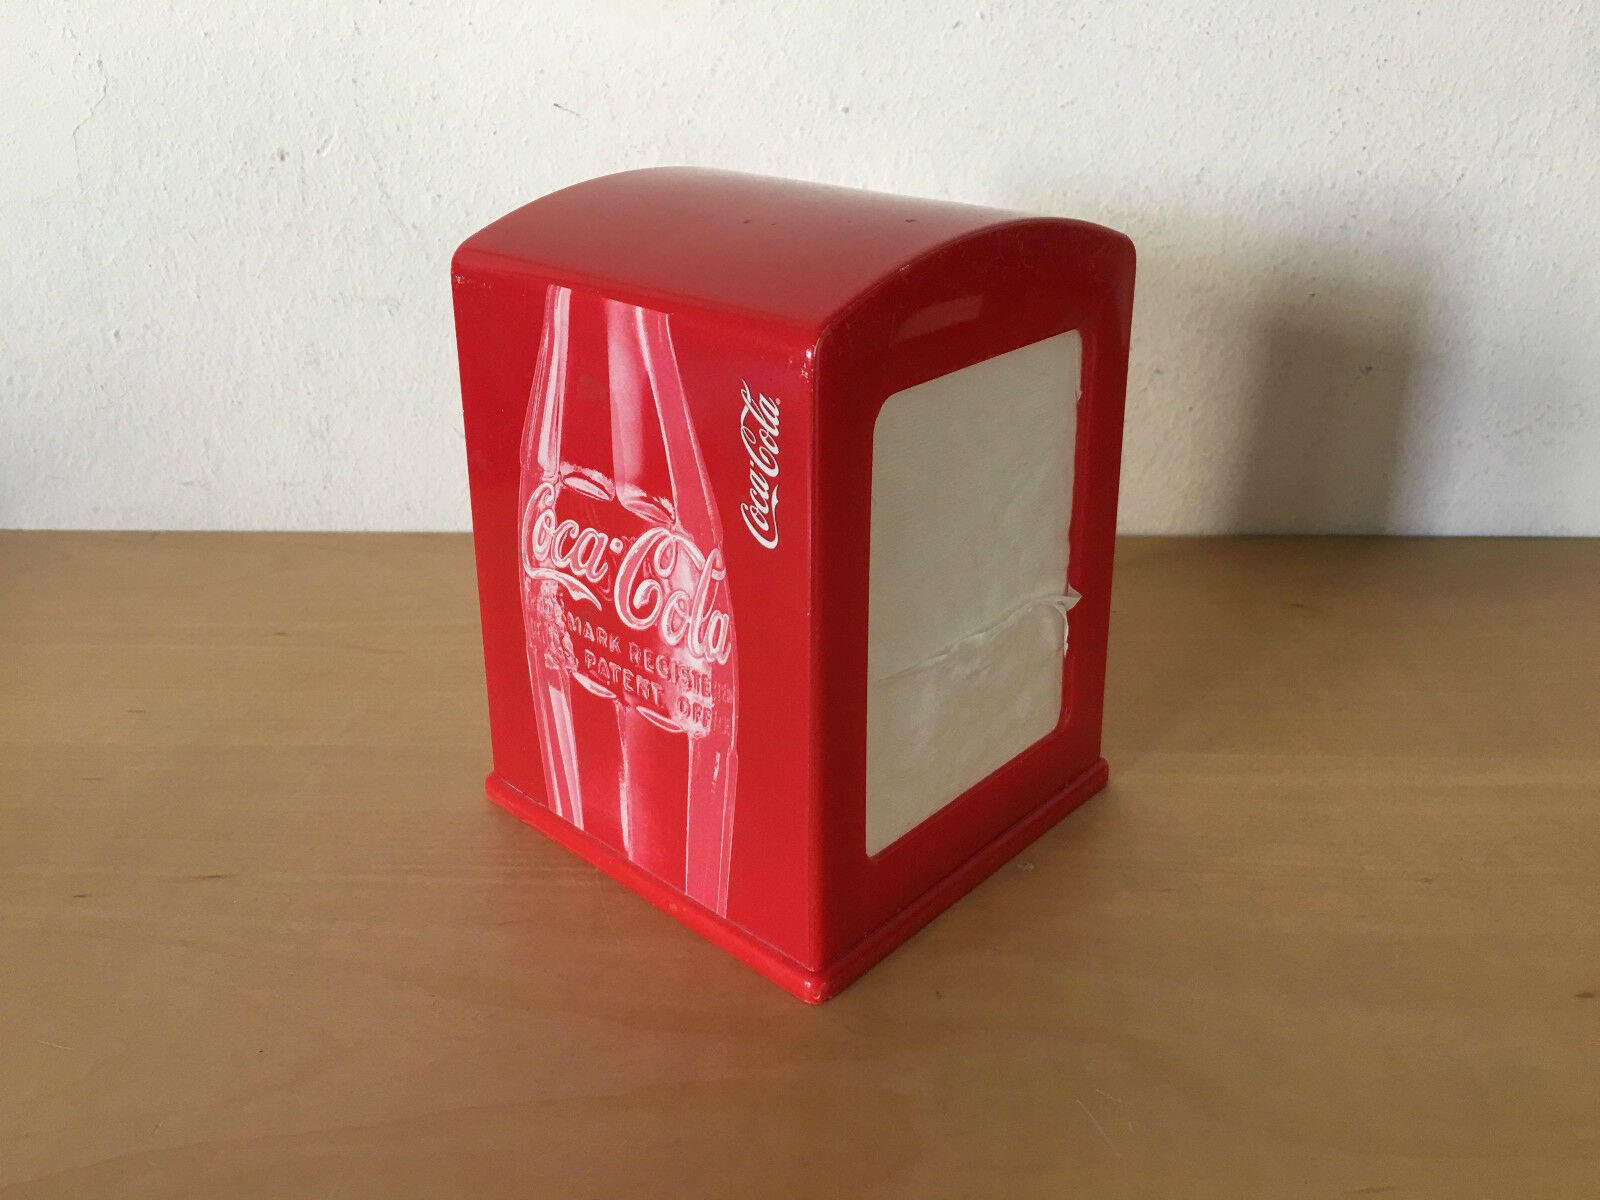 Used - Napkin Box COCA-COLA Caja Servilletas - Red Plastic red - Usada